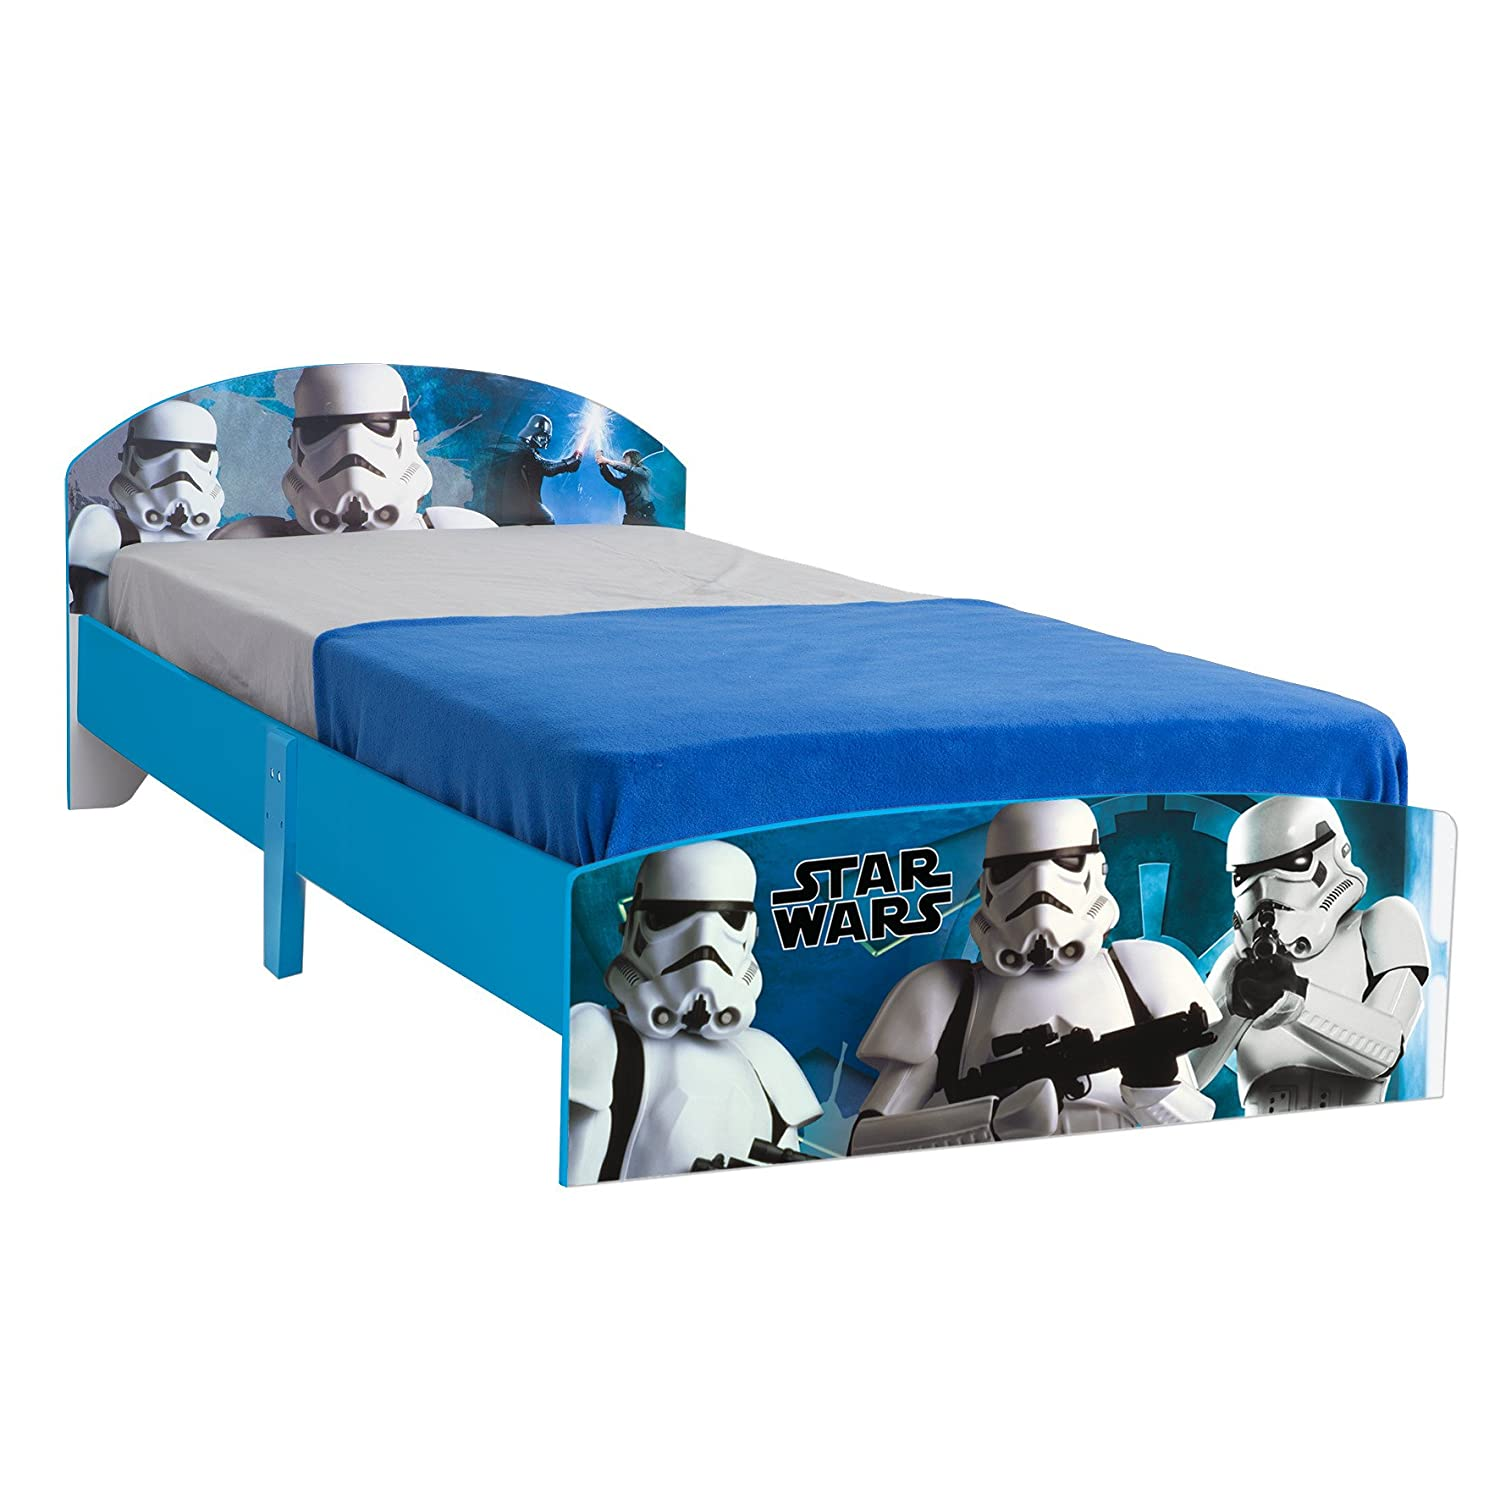 star wars stormtrooper single bed by hellohome blue amazoncouk kitchen amp home: decor uk accslx x